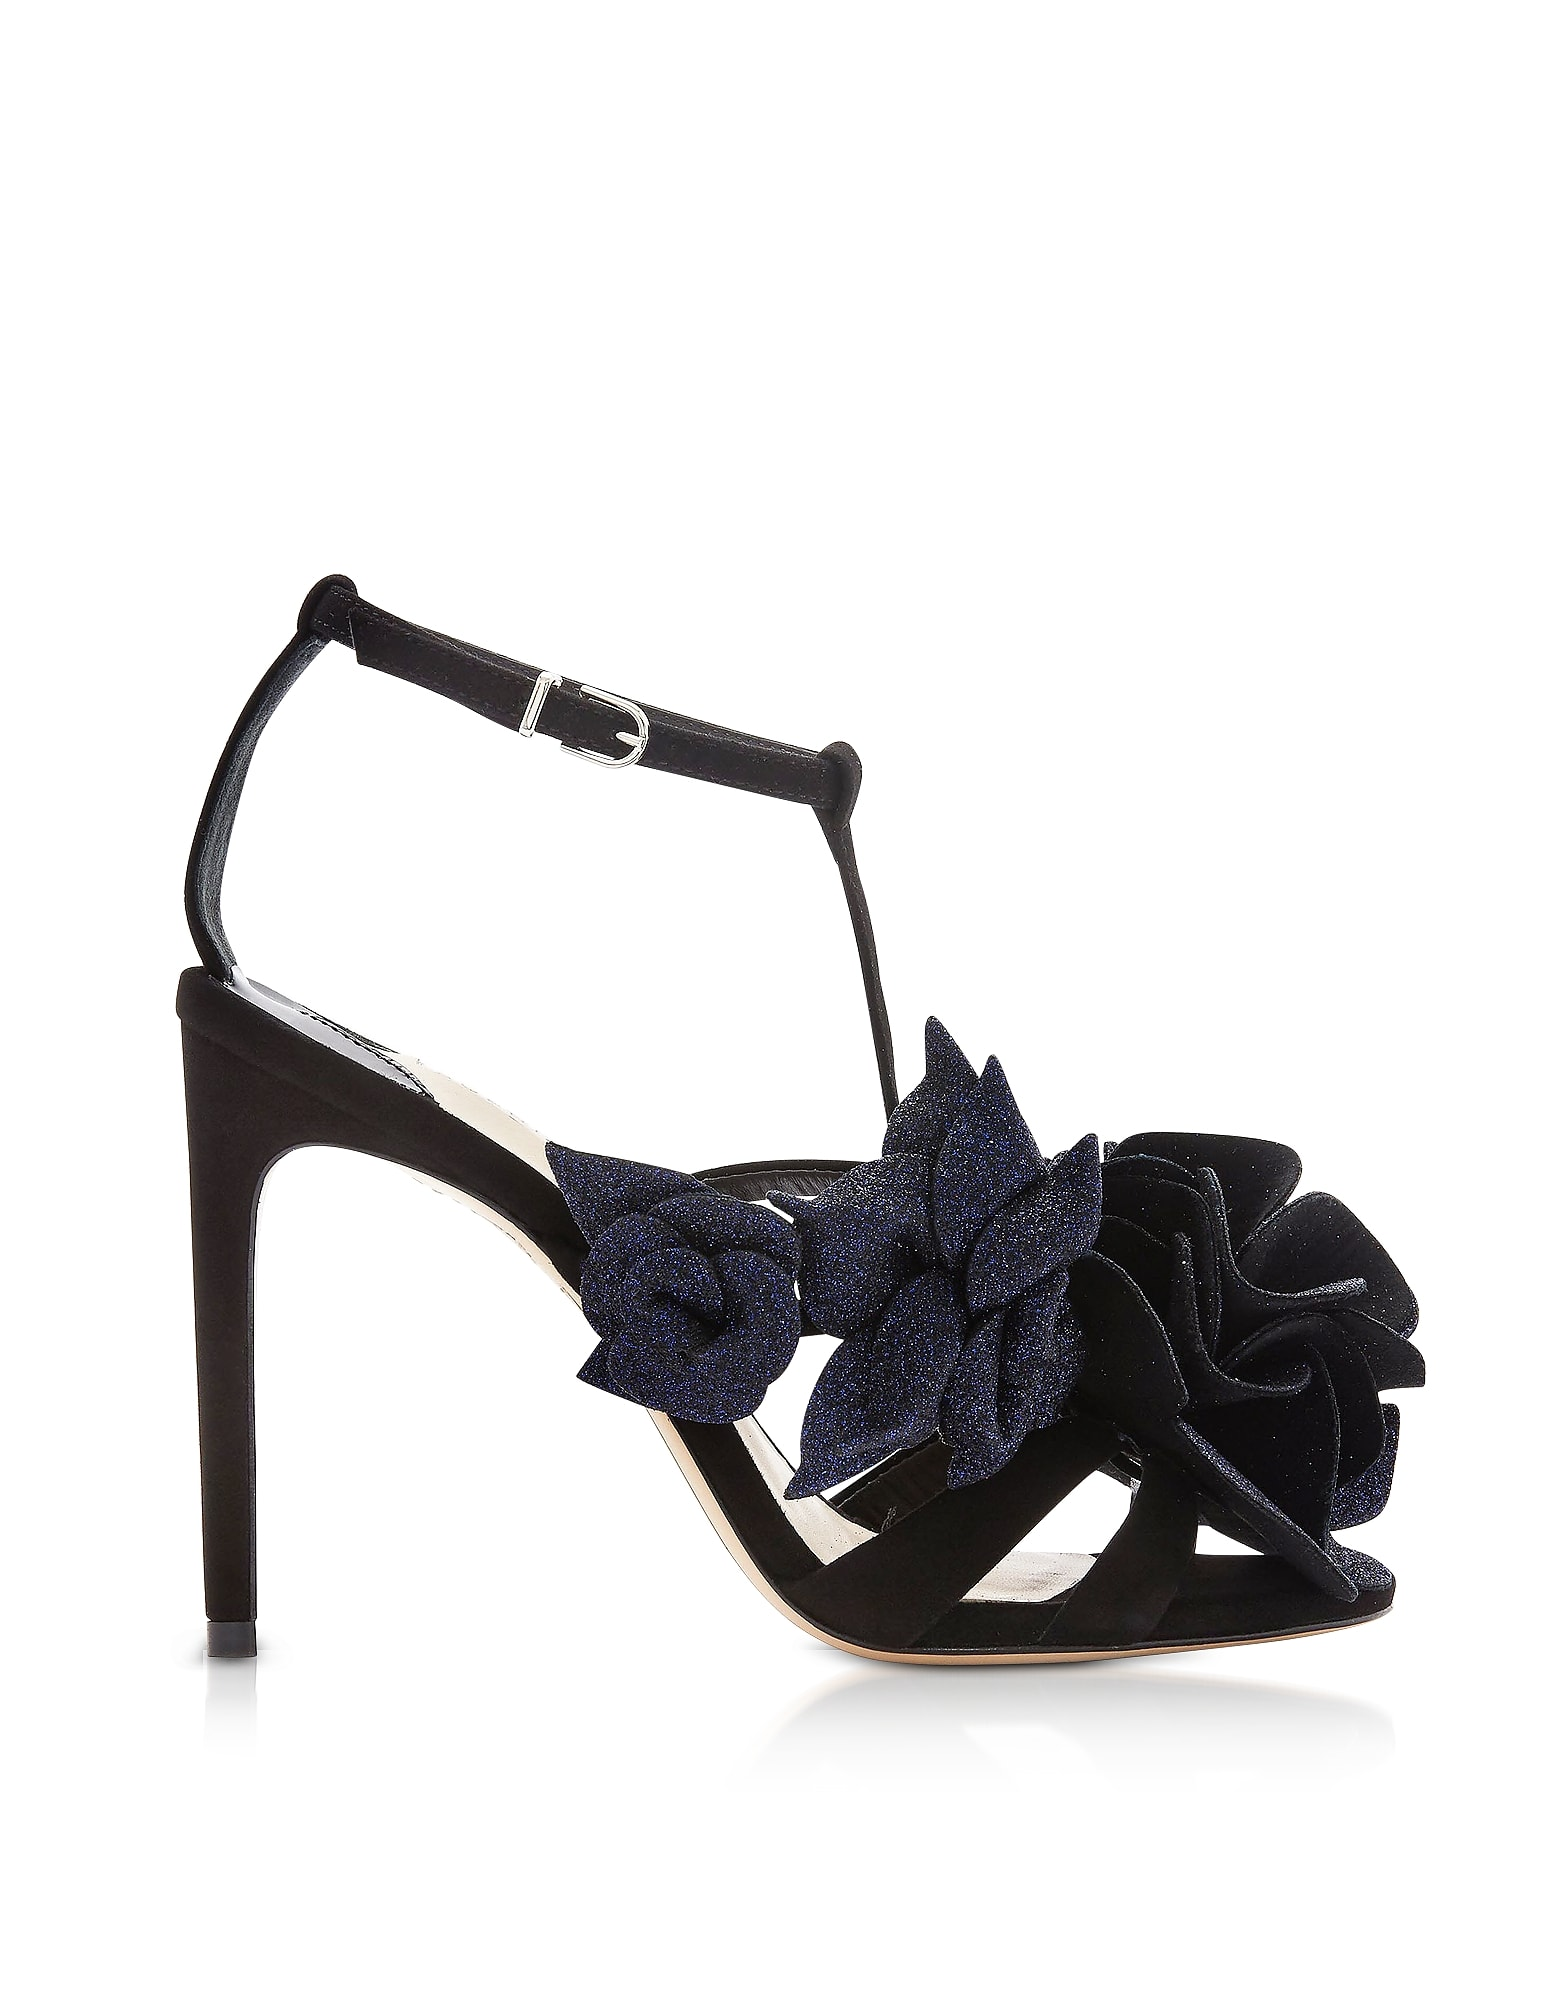 Sophia Webster Black & Midnight Jumbo Lilico Sandals